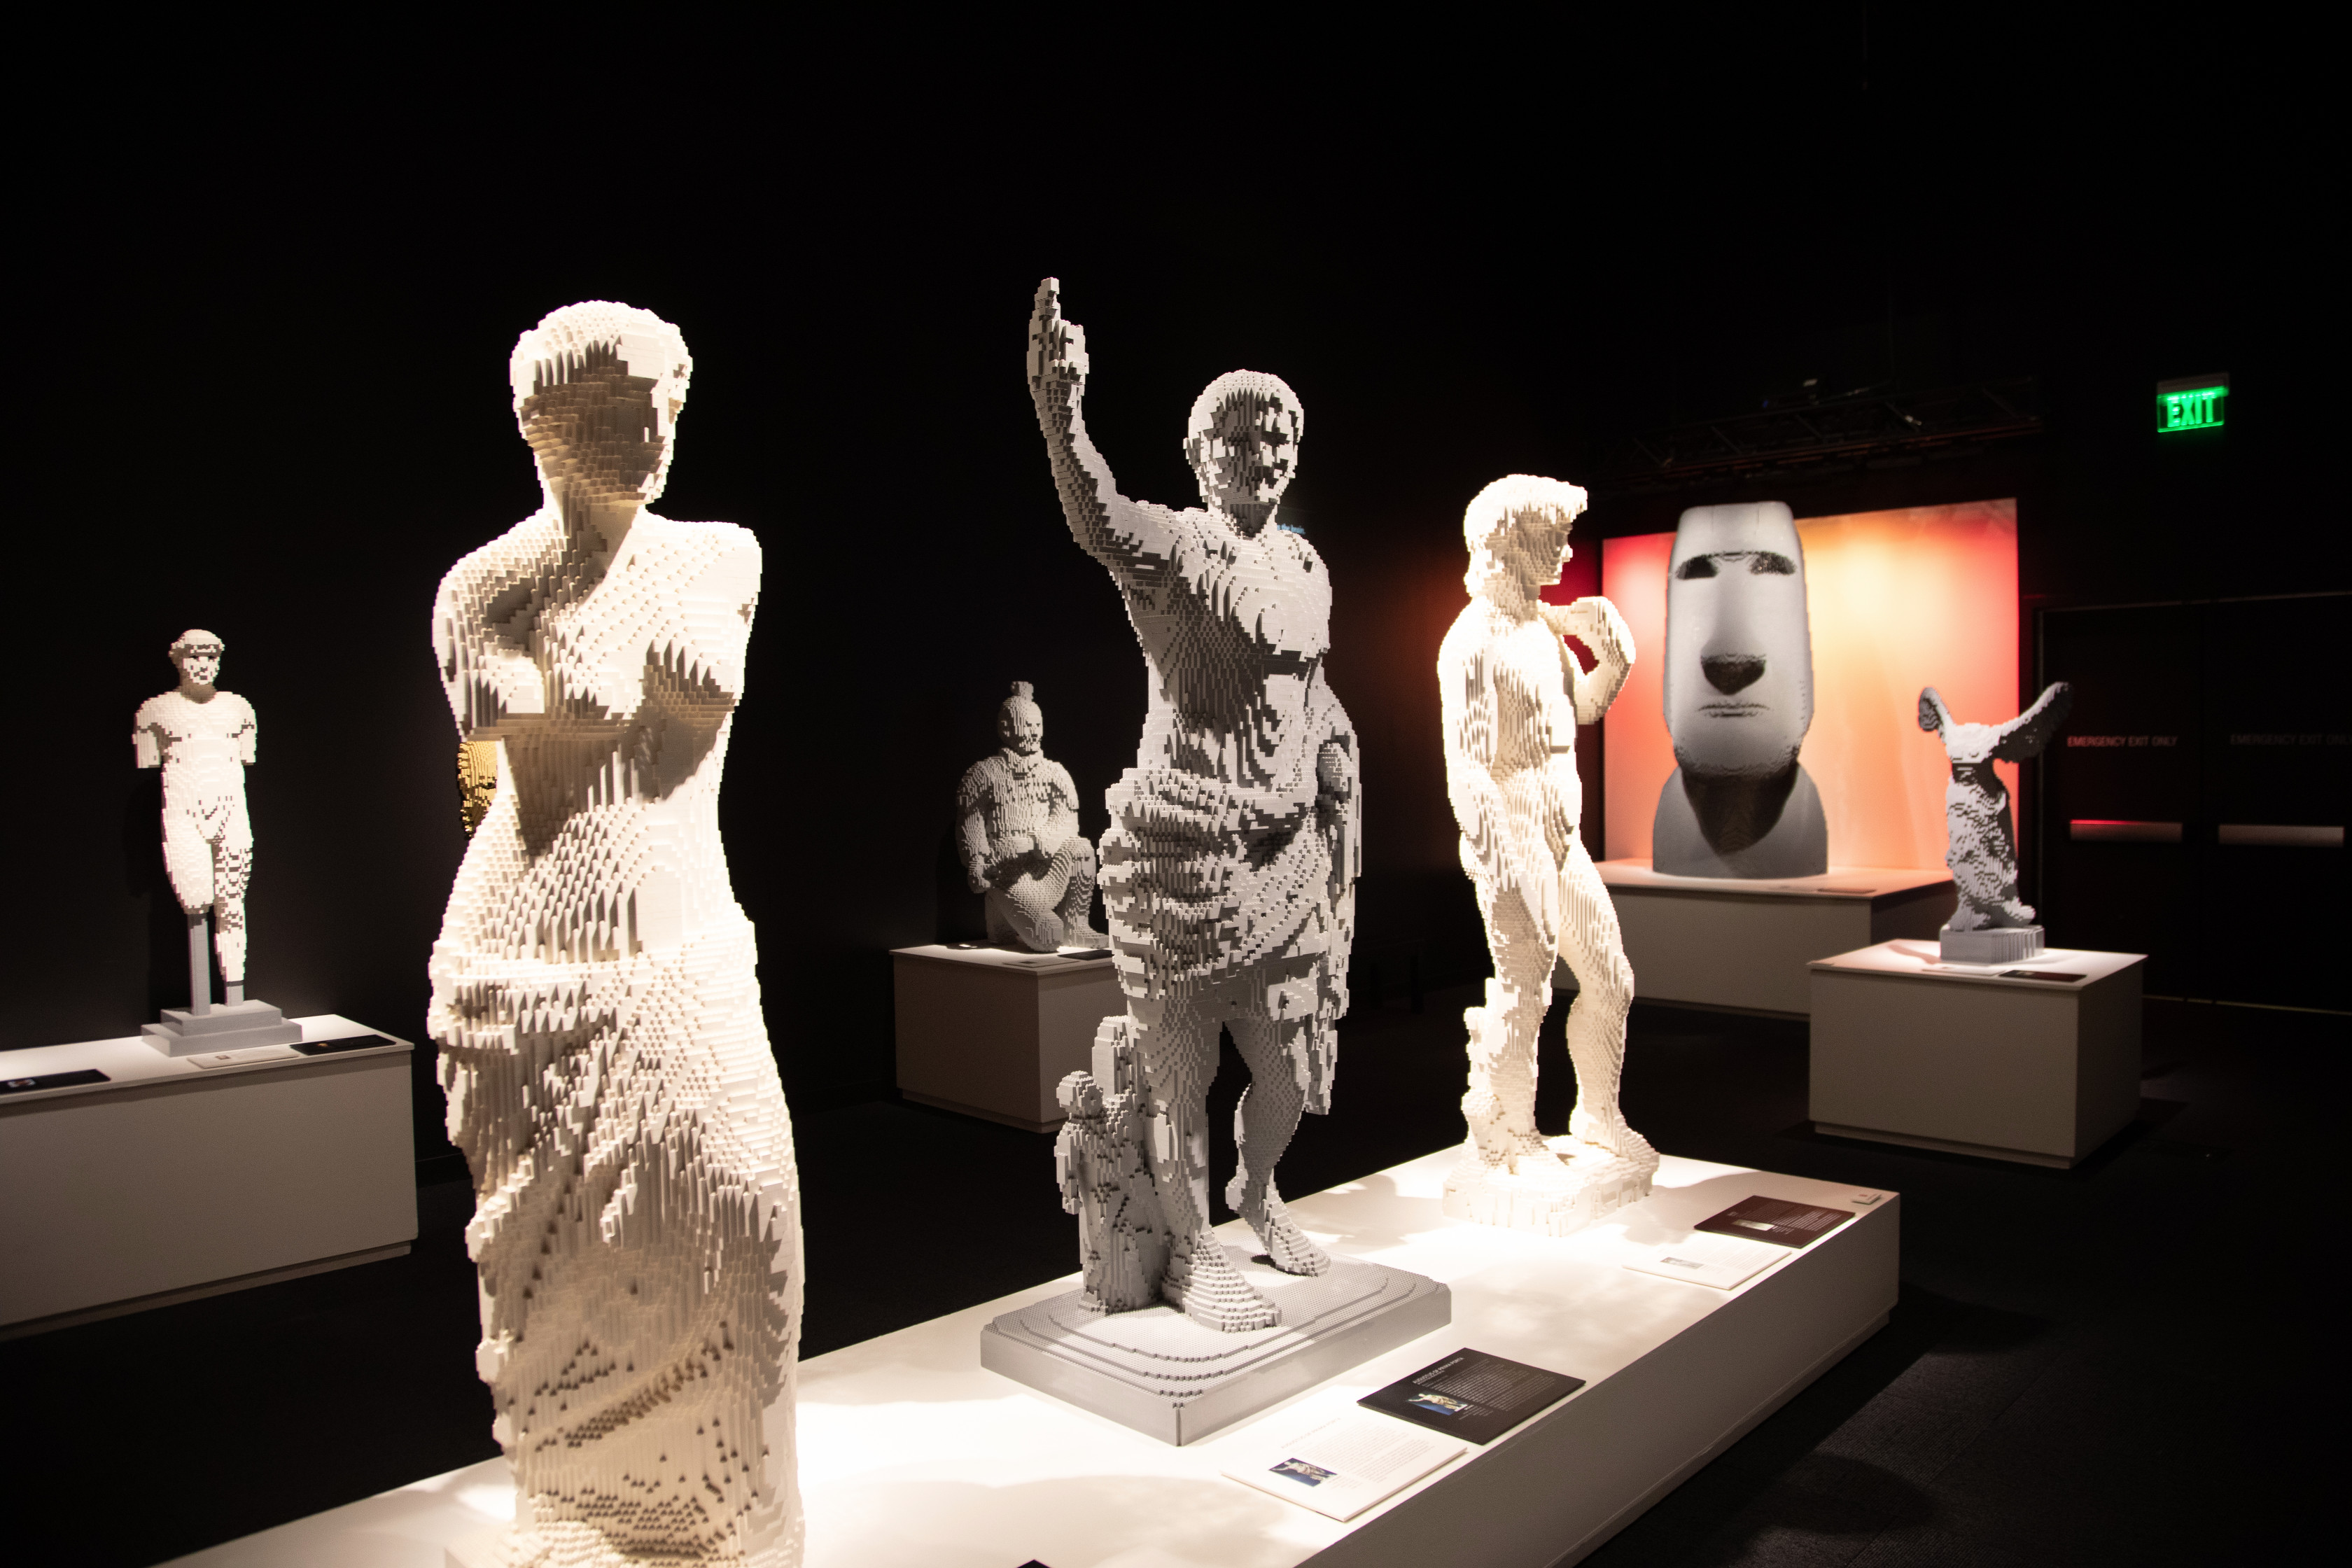 Alexandros of Antioch's Venus de Milo, Augustus of Prima Porta, and Michelangelo's David take center stage in the art history gallery of The Art of the Brick traveling exhibition (PHOTO CREDIT: JerSean Golatt/Perot Museum of Nature and Science)